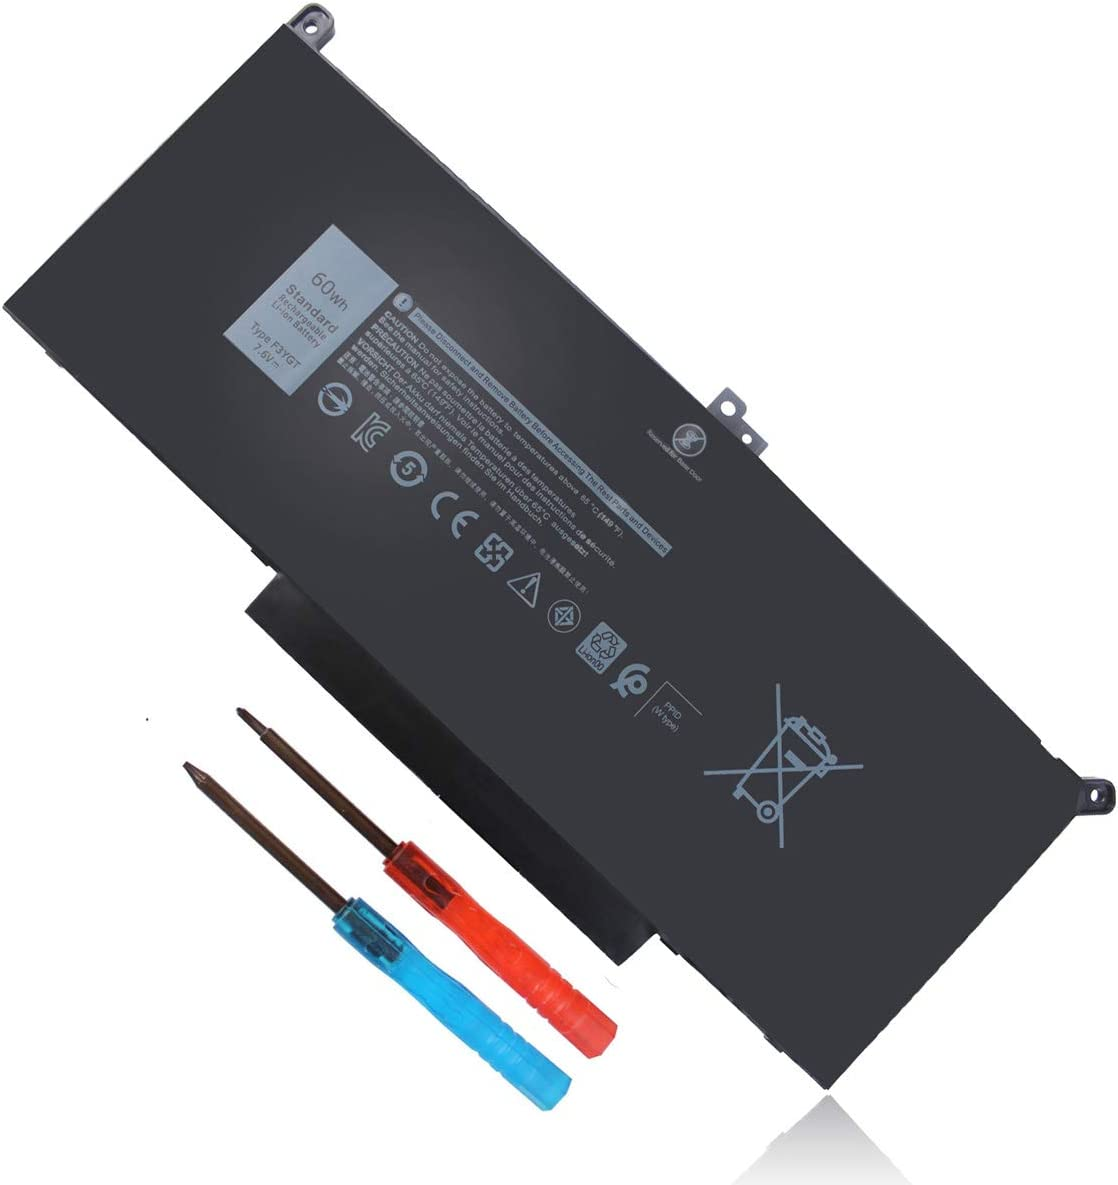 7.6V 60Wh Type F3YGT Battery for Dell Latitude 7480 7490 7280 7290 7380 7390 P73G001 P73G002 P28S001 P28S002 P29S002 DM3WC 2X39G DM6WC 451-BBYE 453-BBCF P28S P73G KG7VF 4-Cell